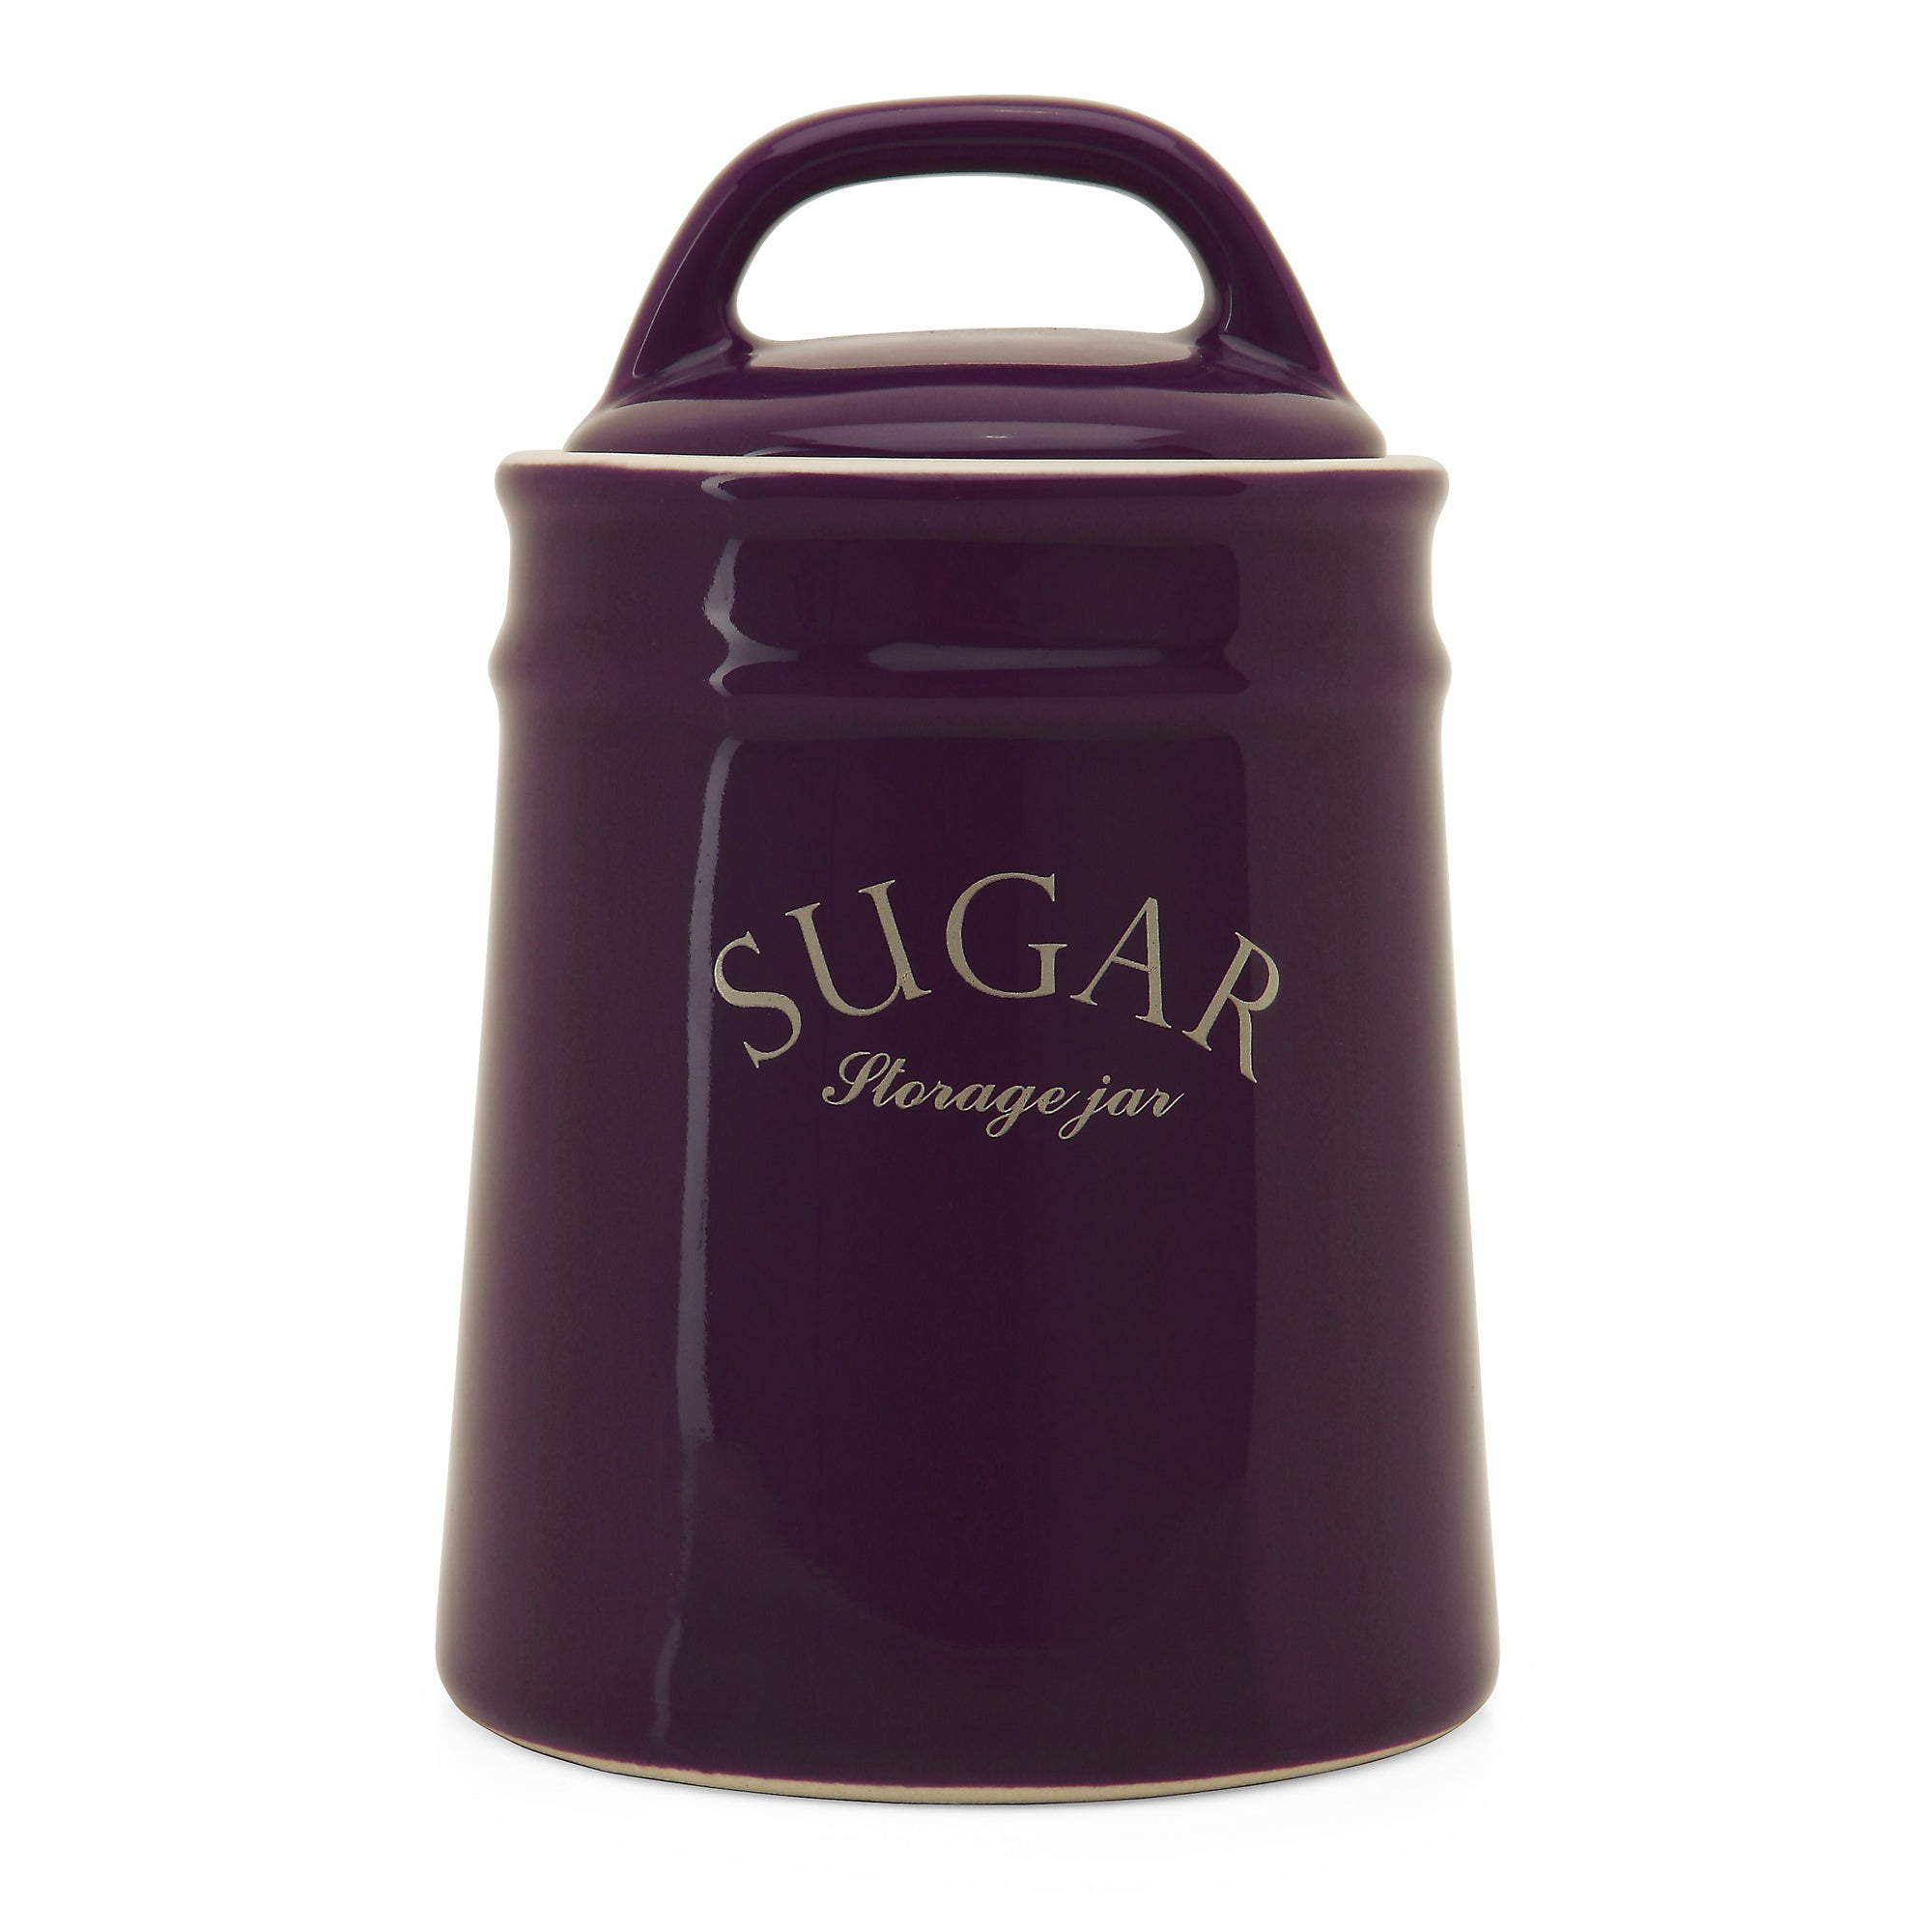 Mulberry Flower Collection Sugar Canister